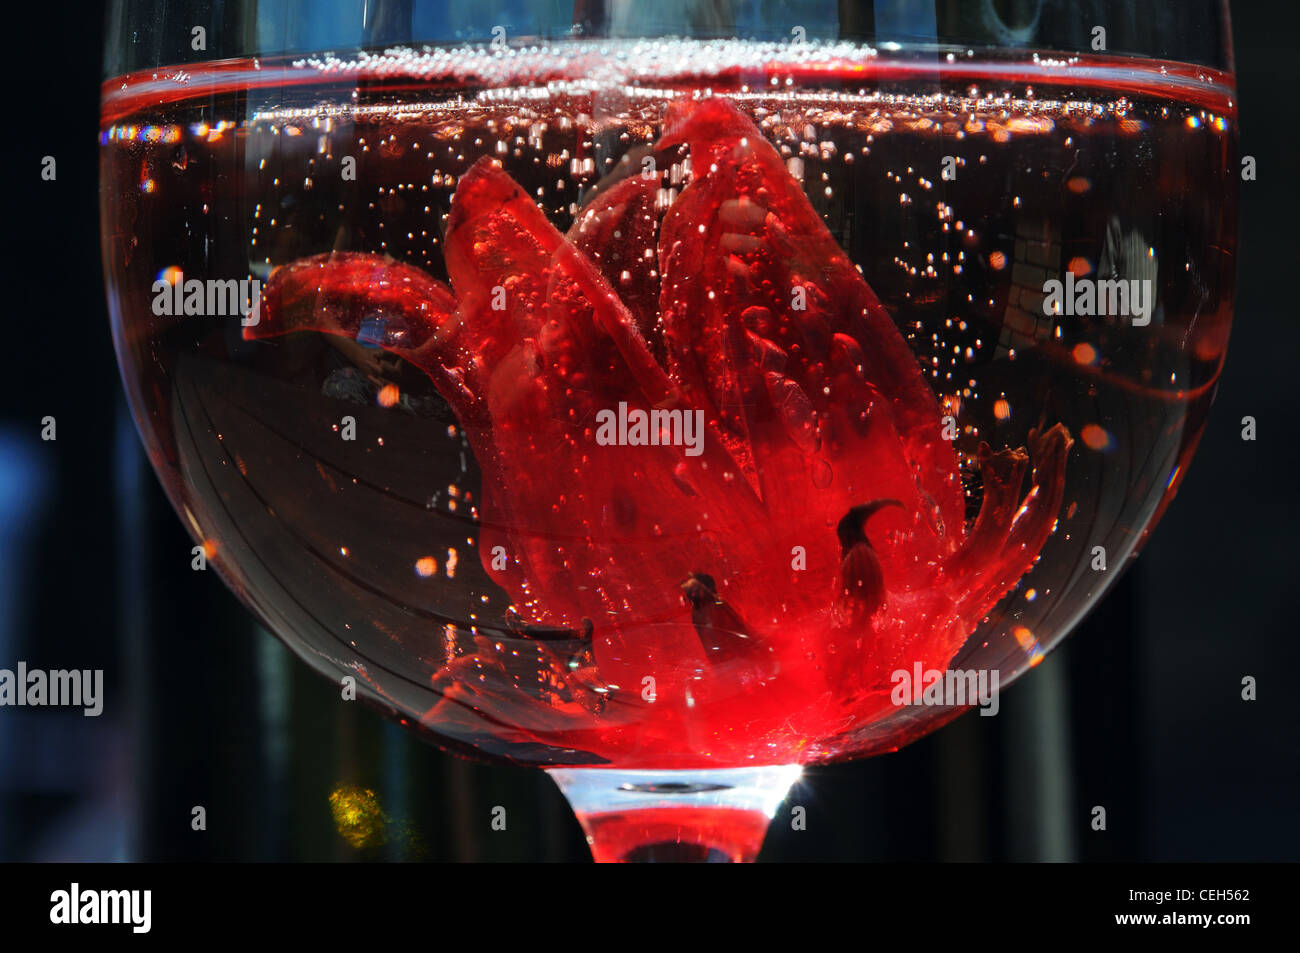 A Hibiscus Flower In A Glass Of Champagne Stock Photo 43403194 Alamy